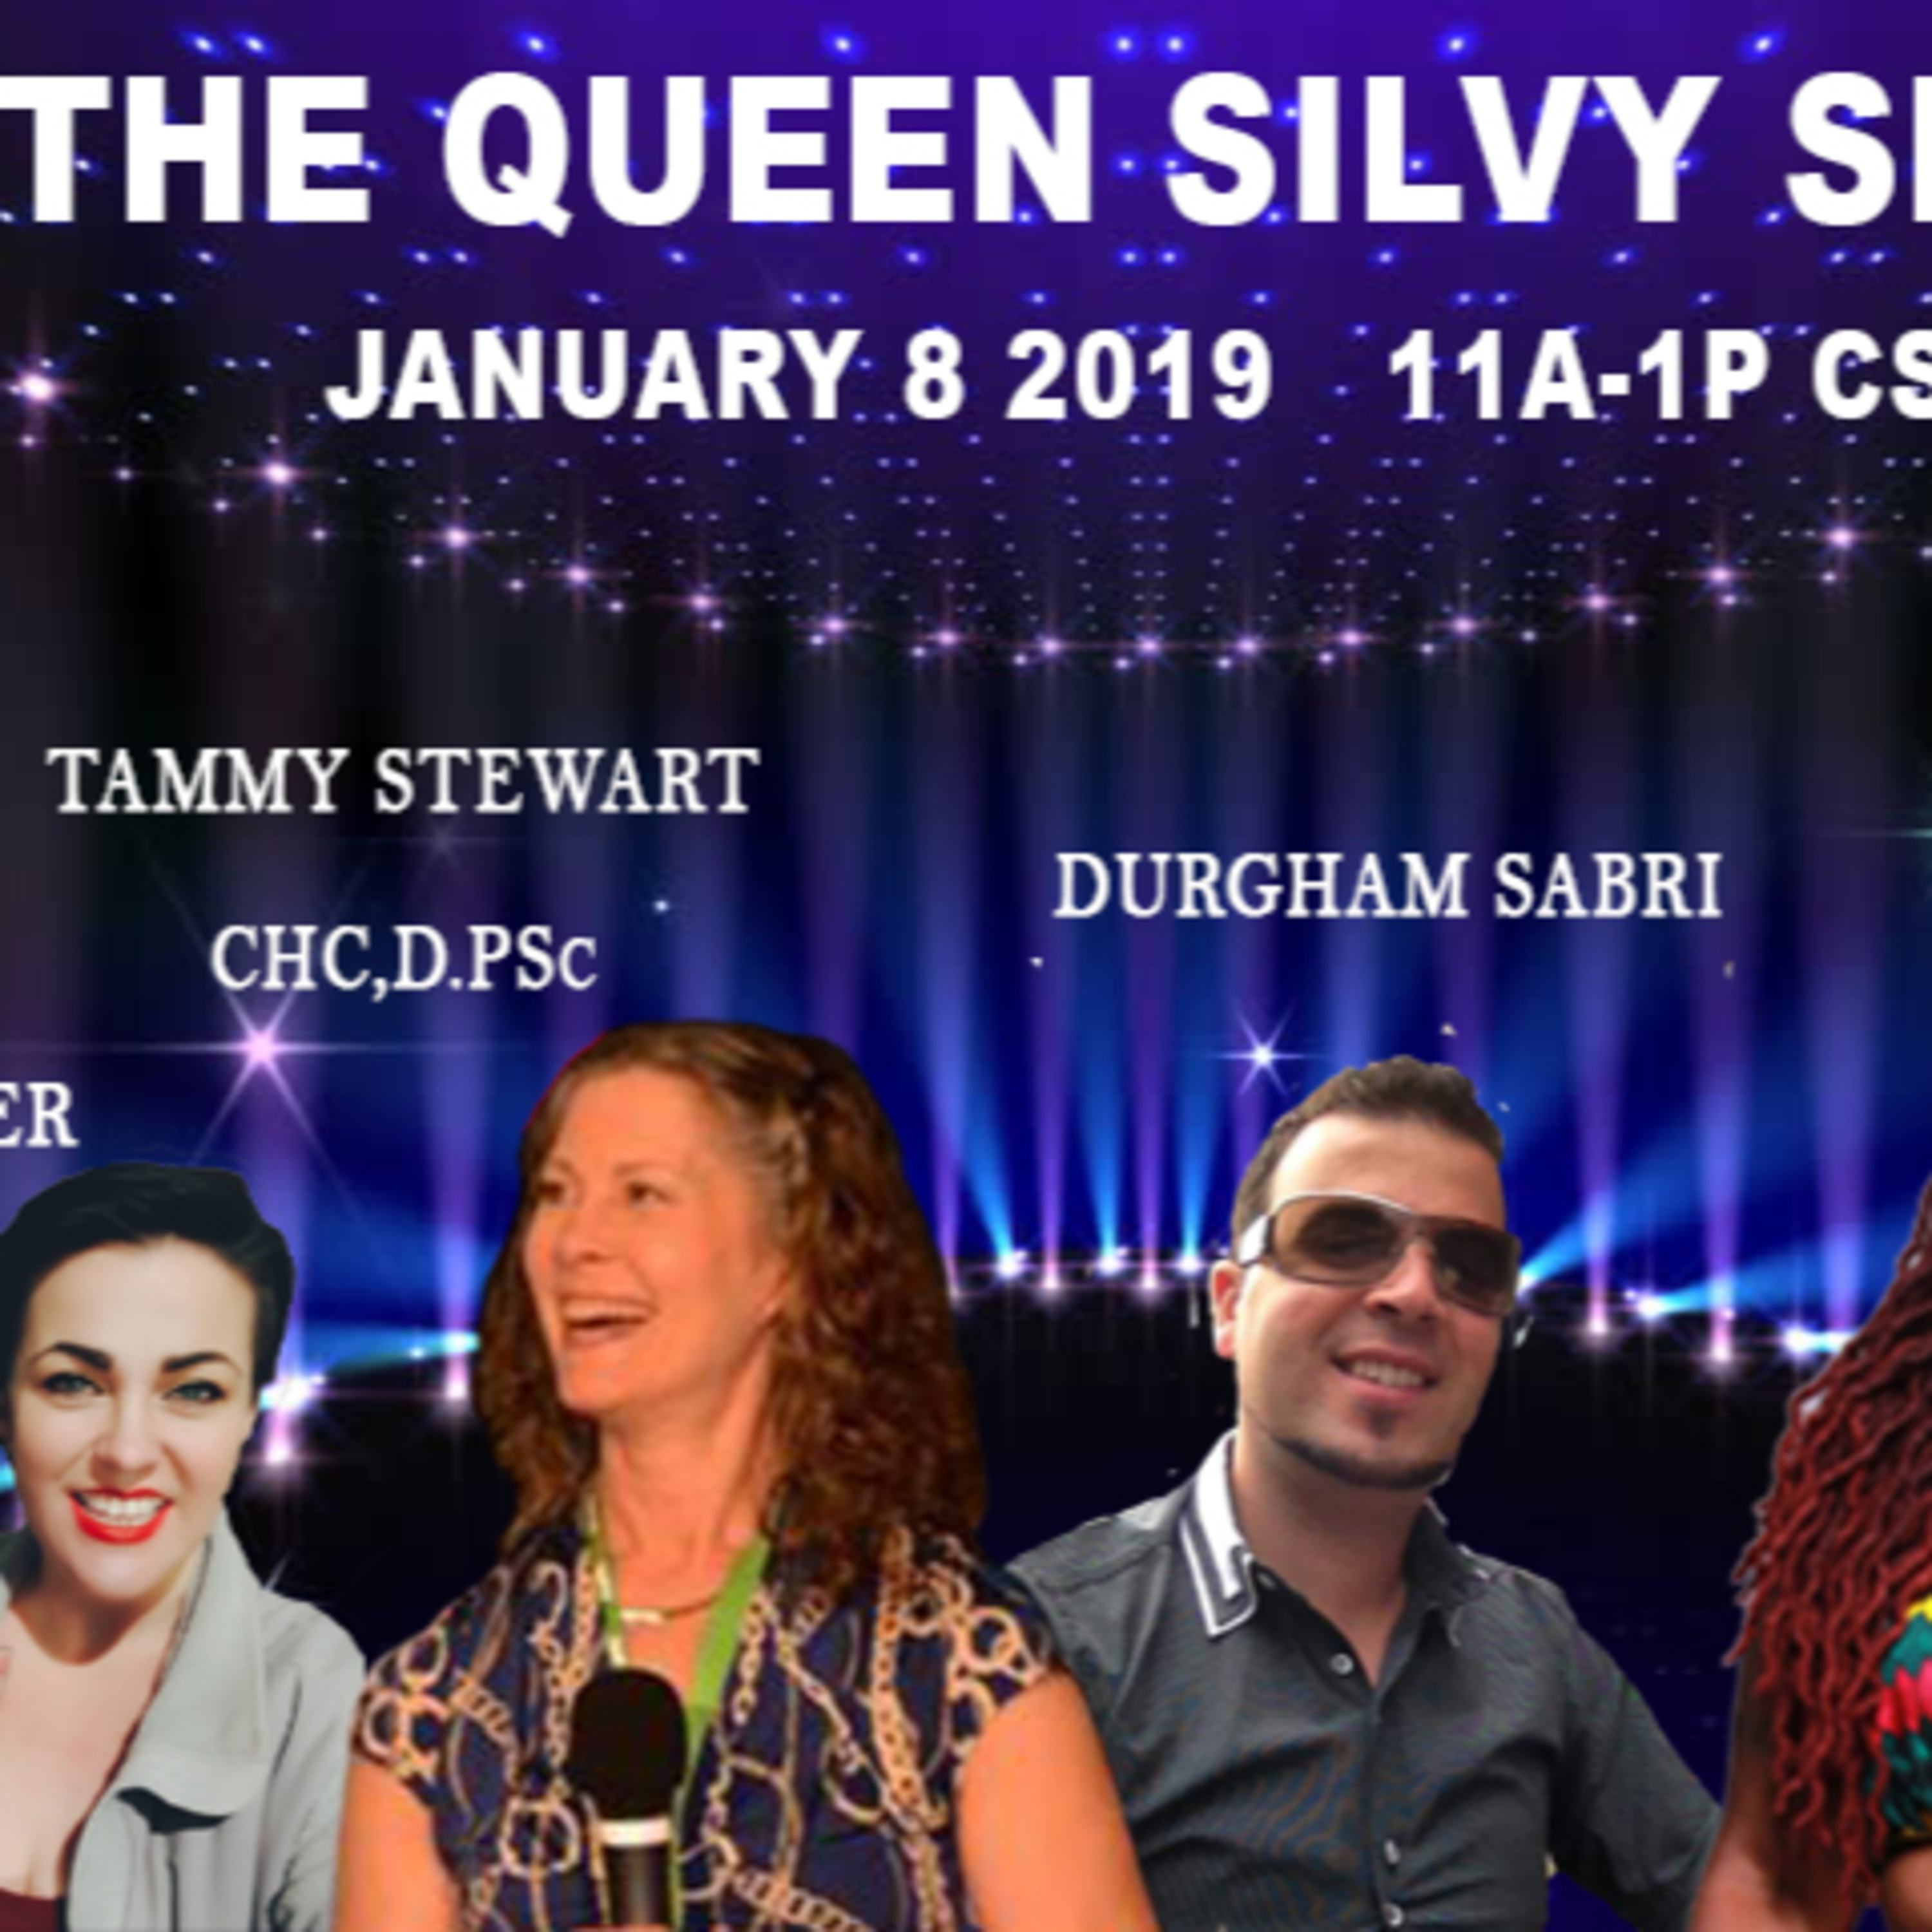 The Queen Silvy Show - January 8 2019